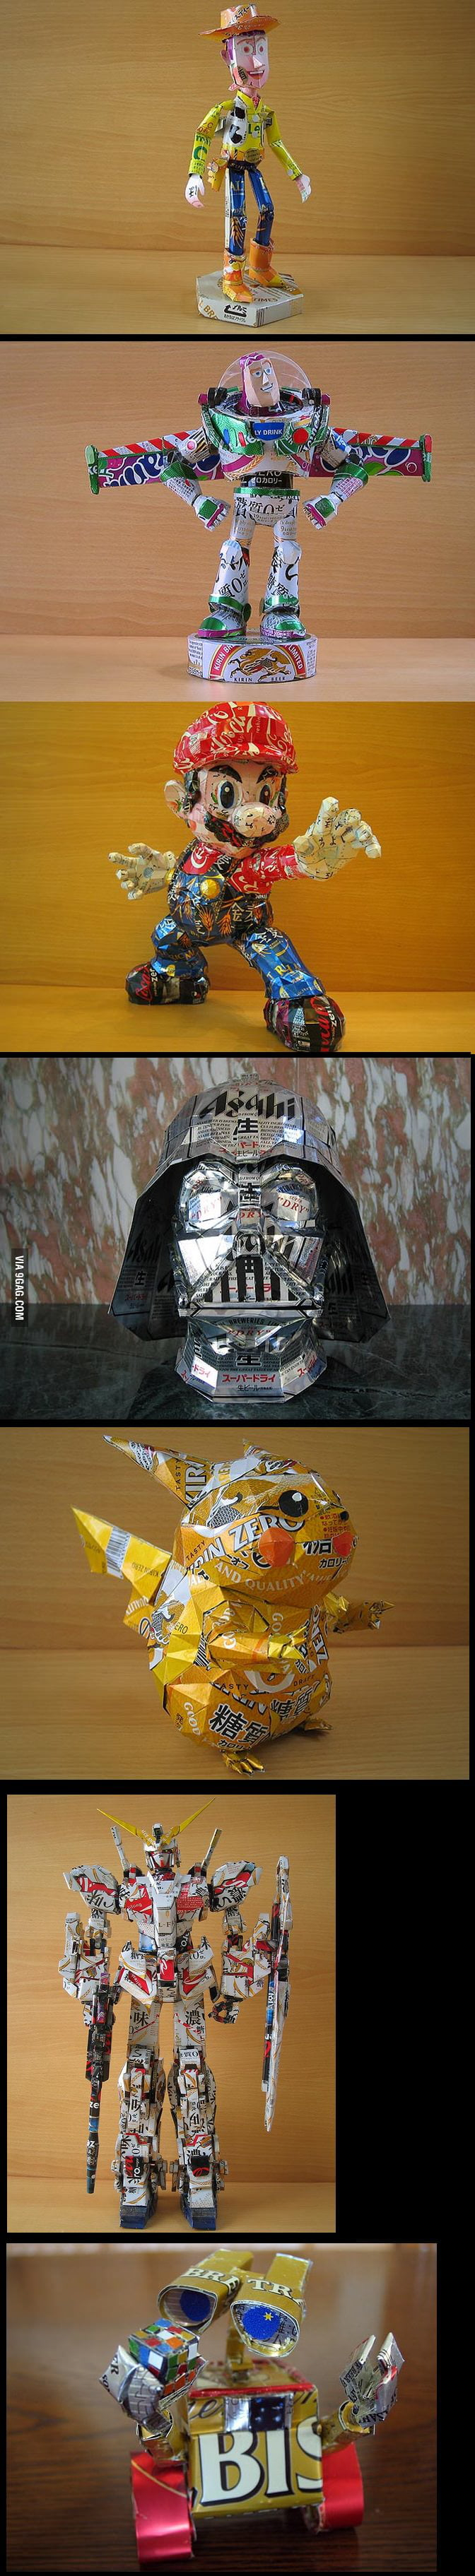 Action figure using drink cans by Japanese artist, Macaon